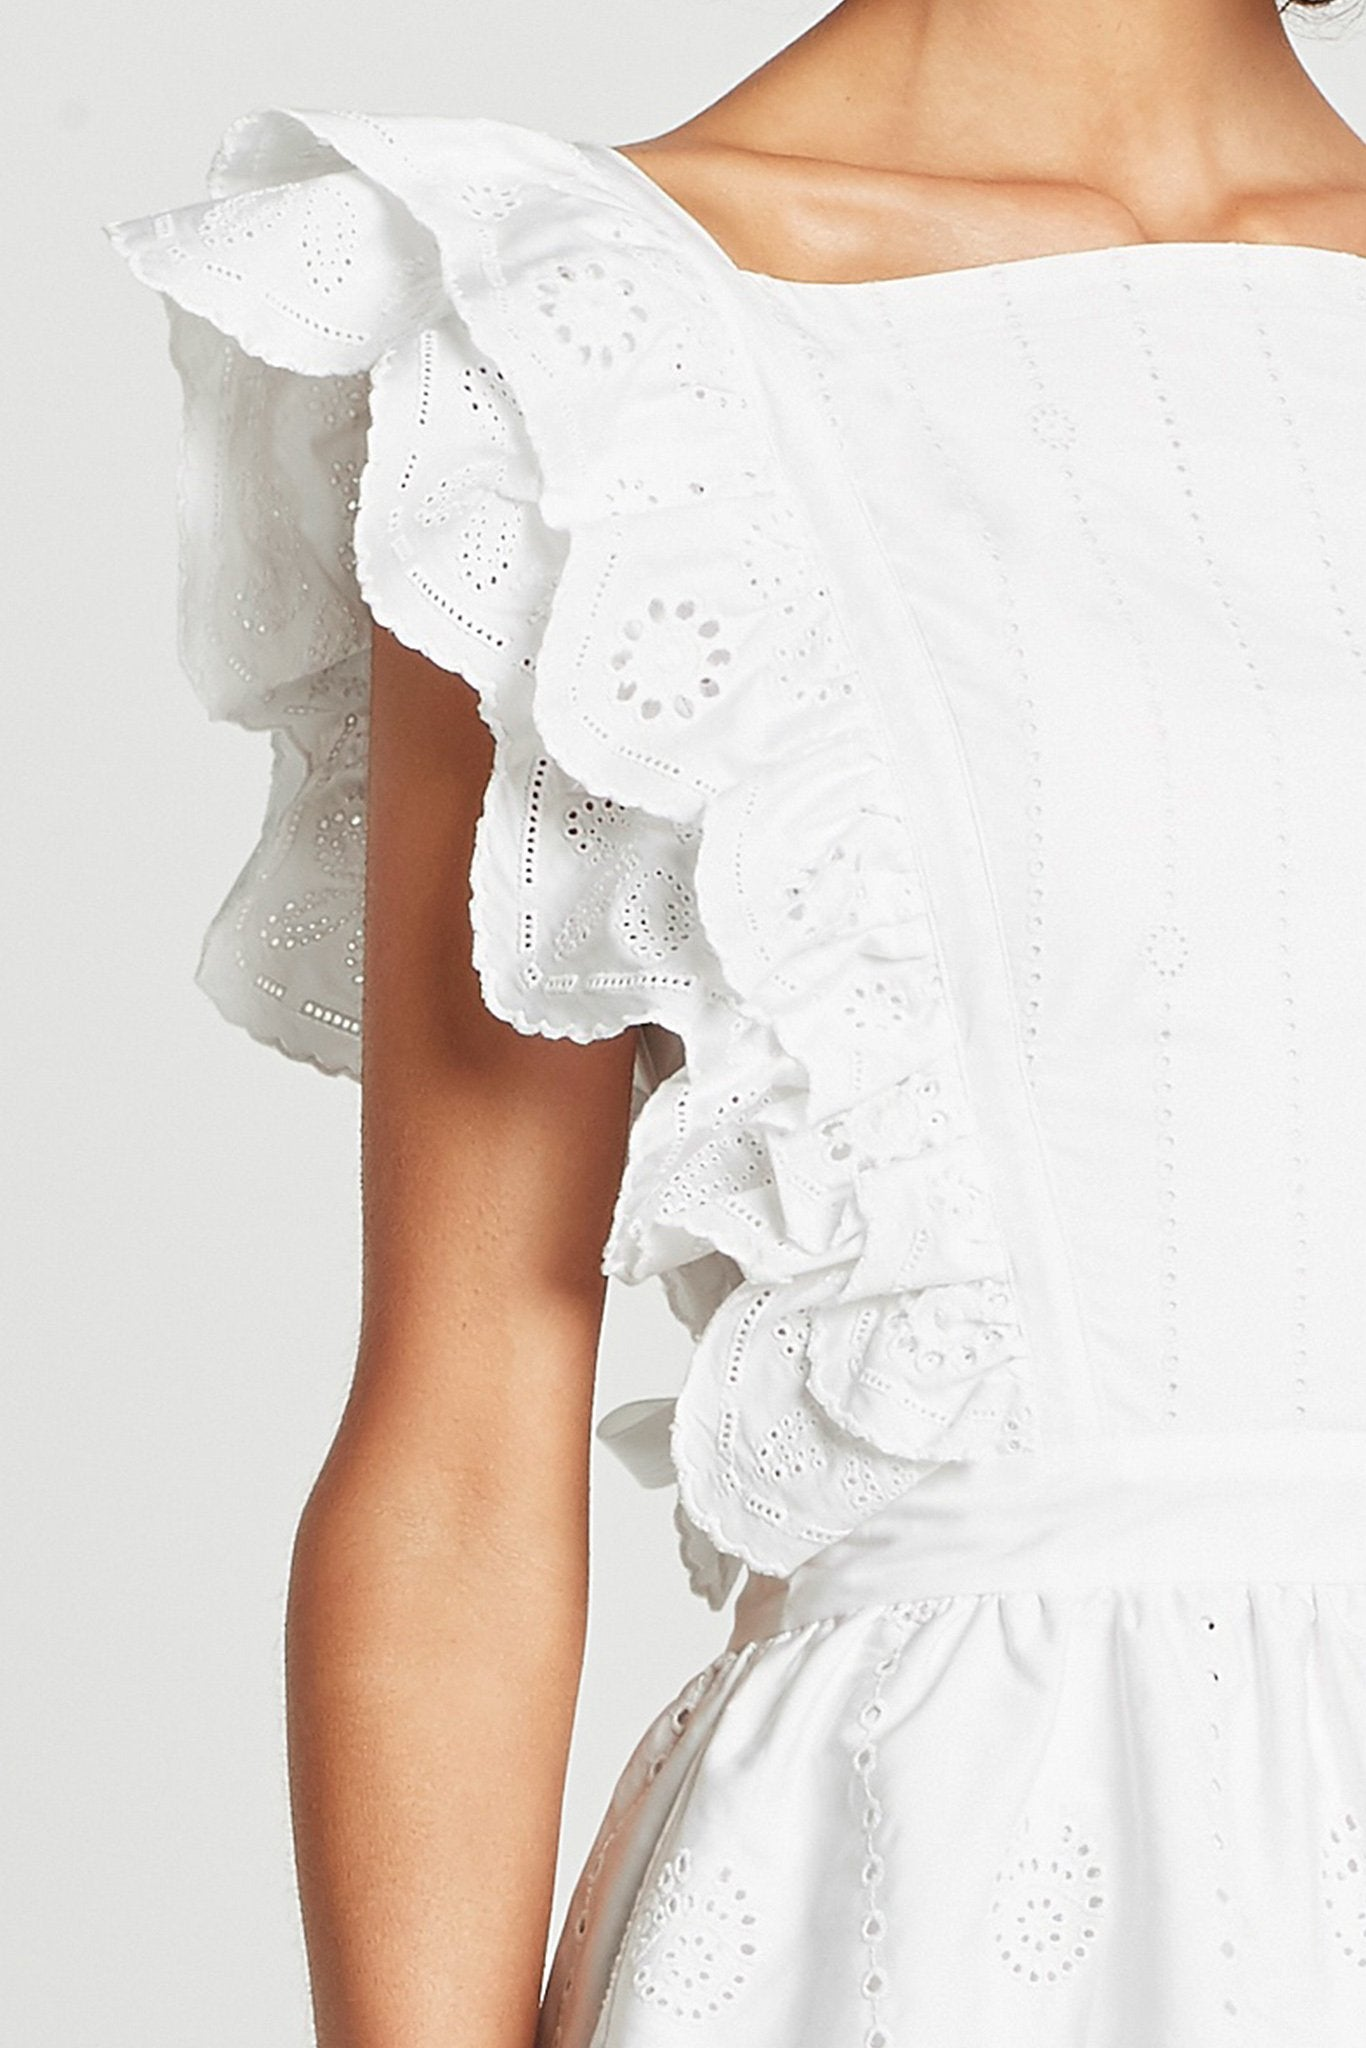 SIR The Label Delilah Ruffle Mini Dress - White